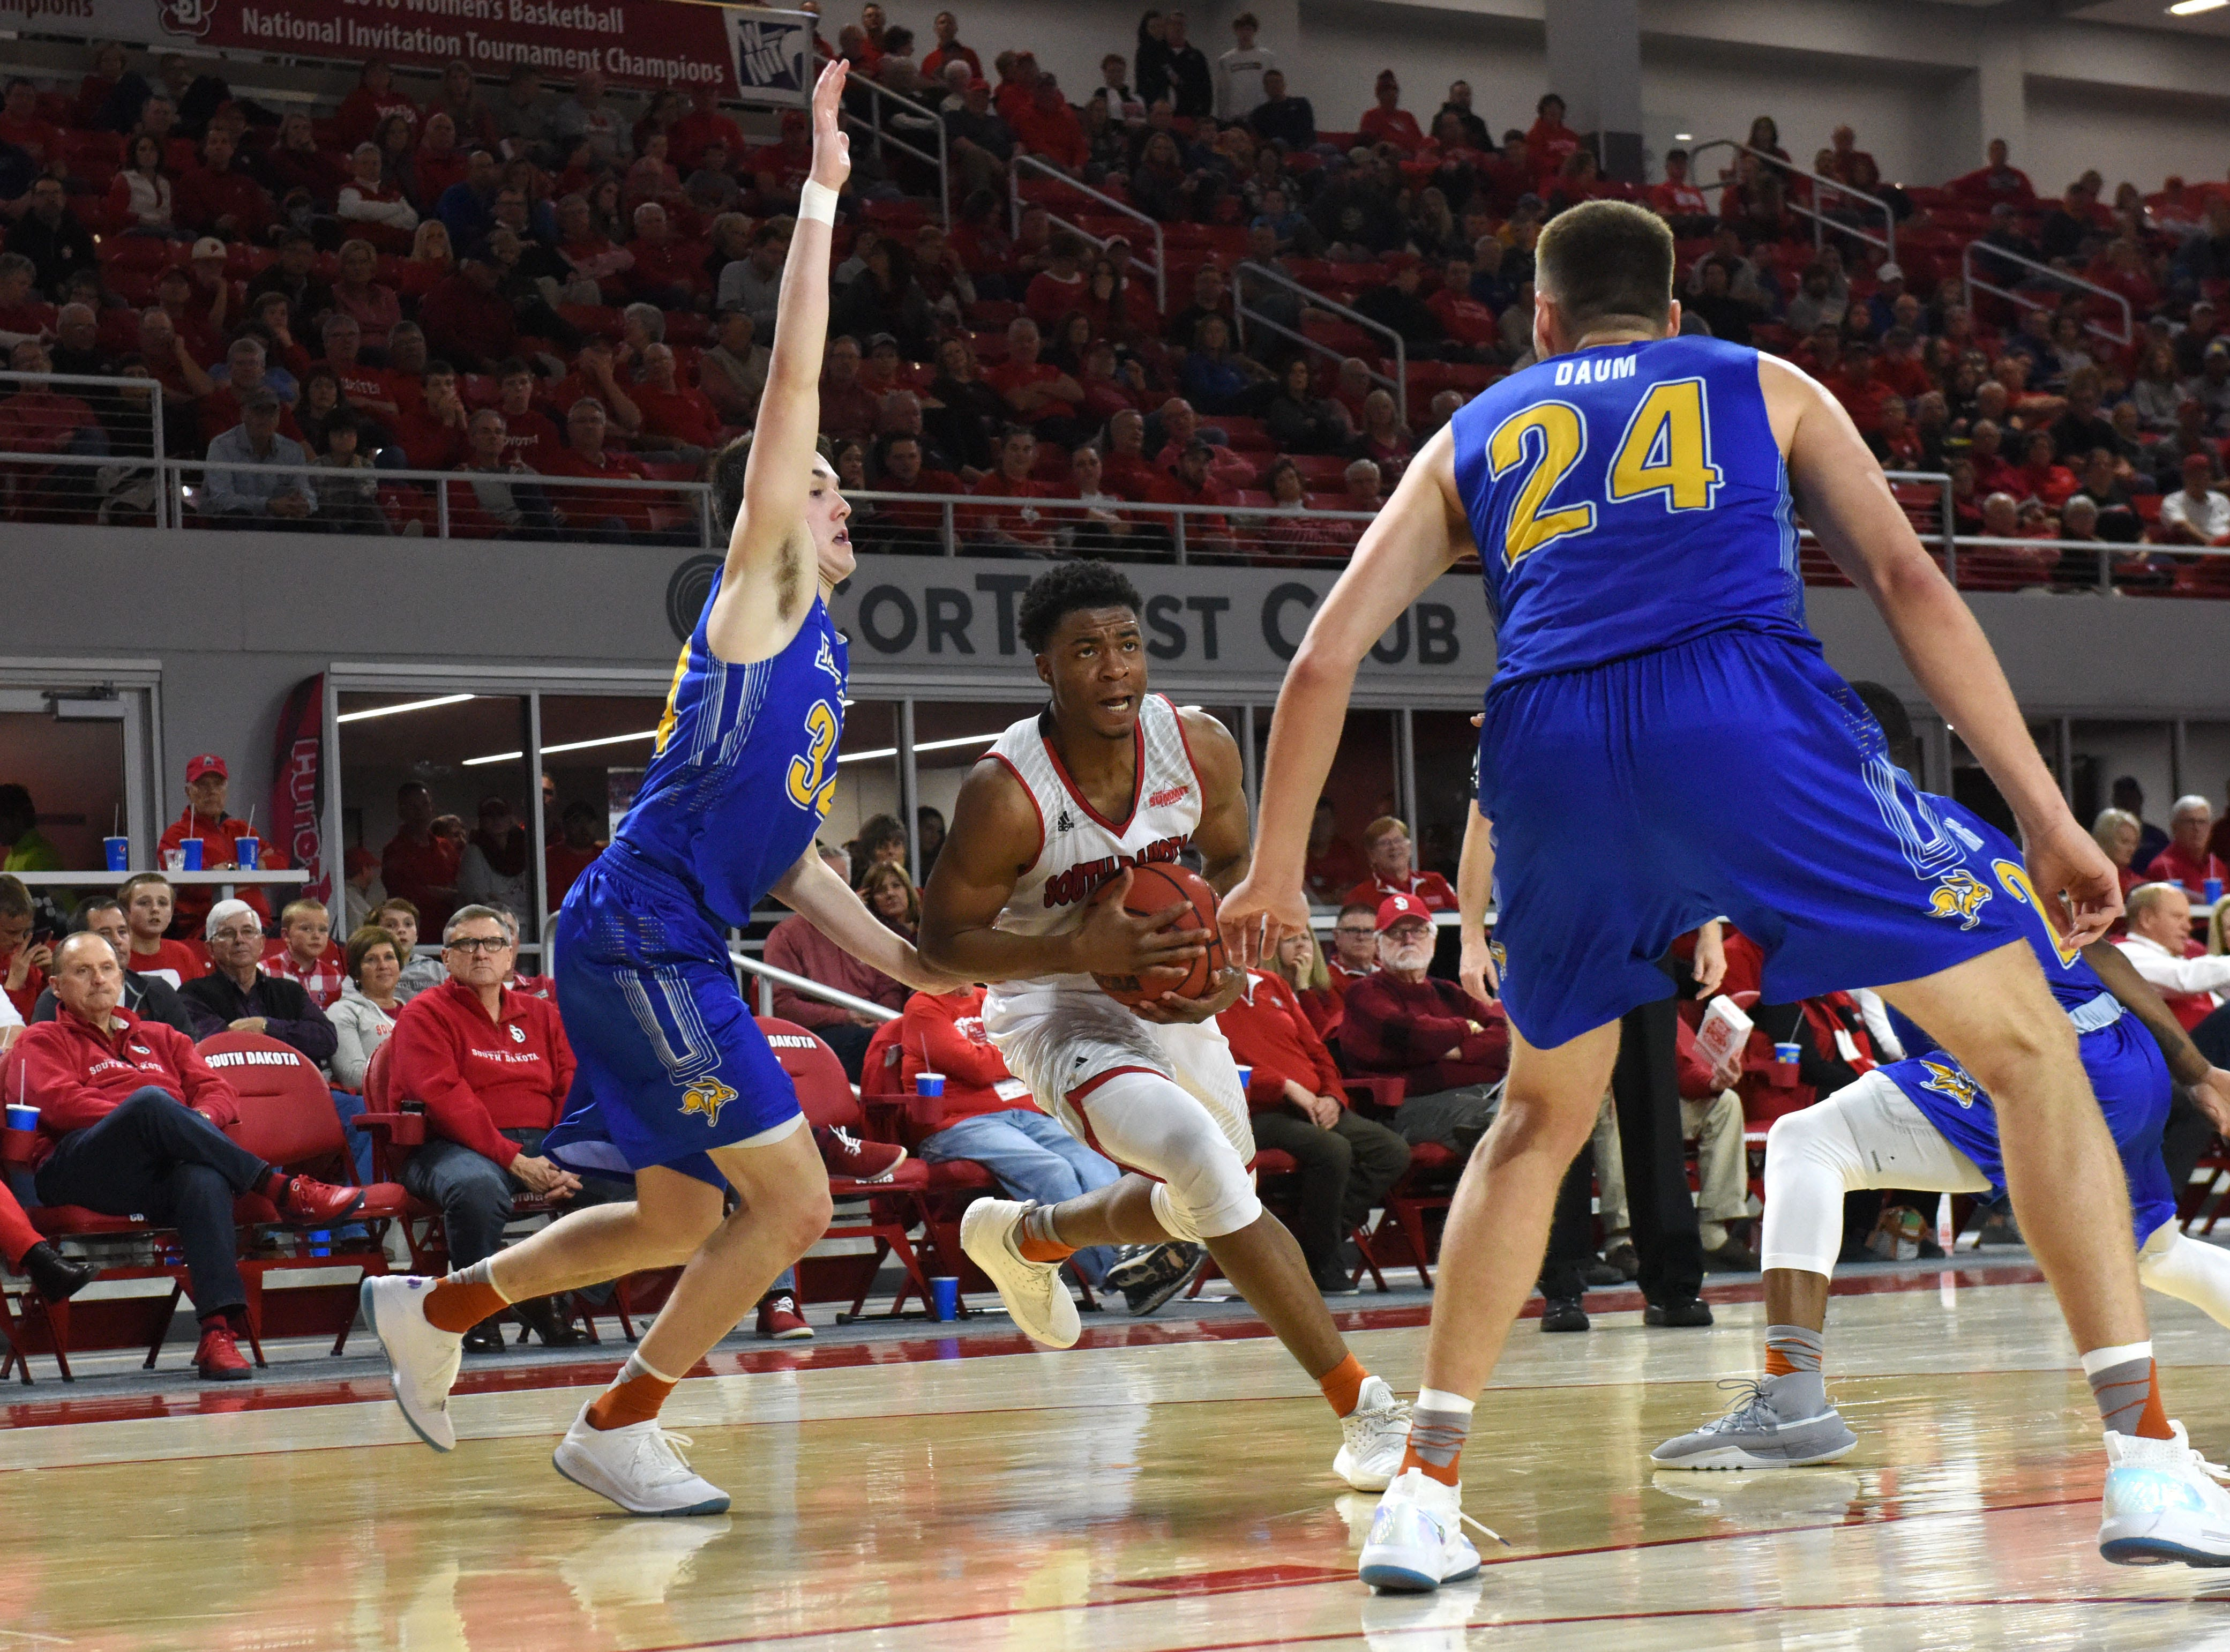 USD's Stanley Umude (0) dribbles the ball past SDSU players during a game, Sunday, Jan. 6, 2019 in Vermillion, S.D.